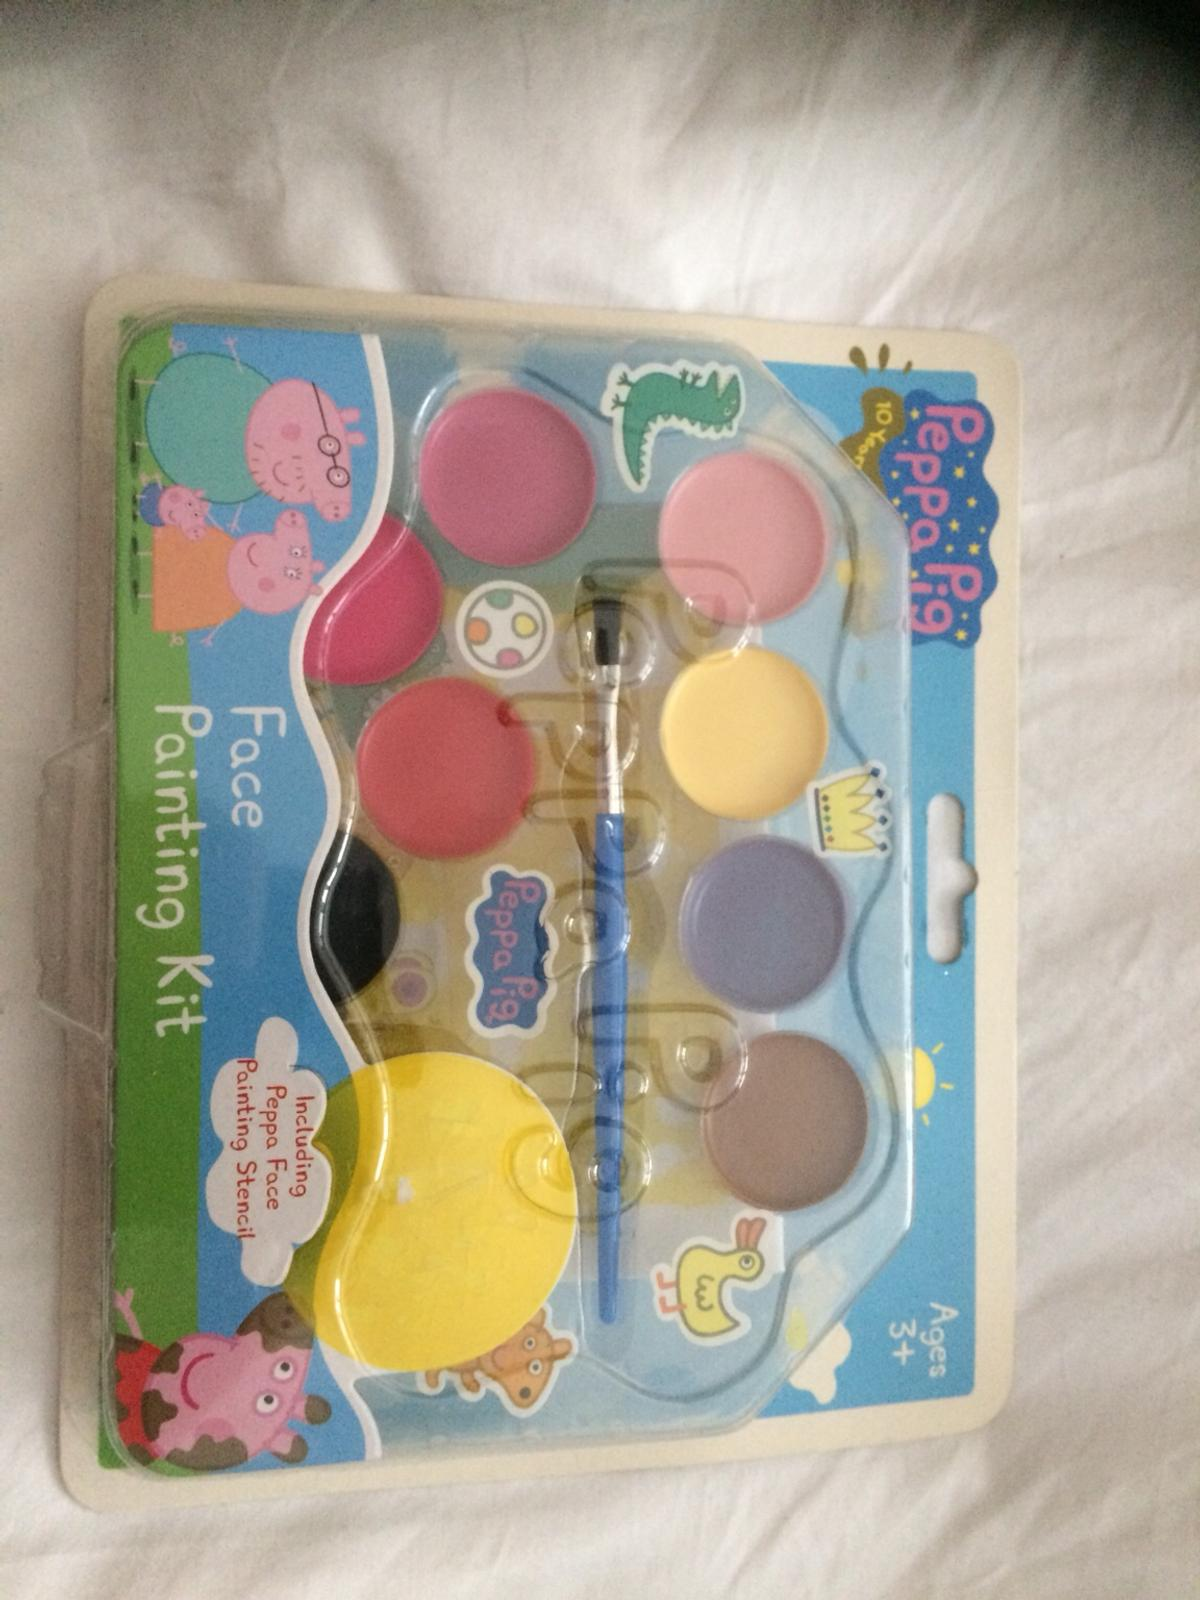 New Peppa Pig Face Paint Set In B44 Birmingham For 2 50 For Sale